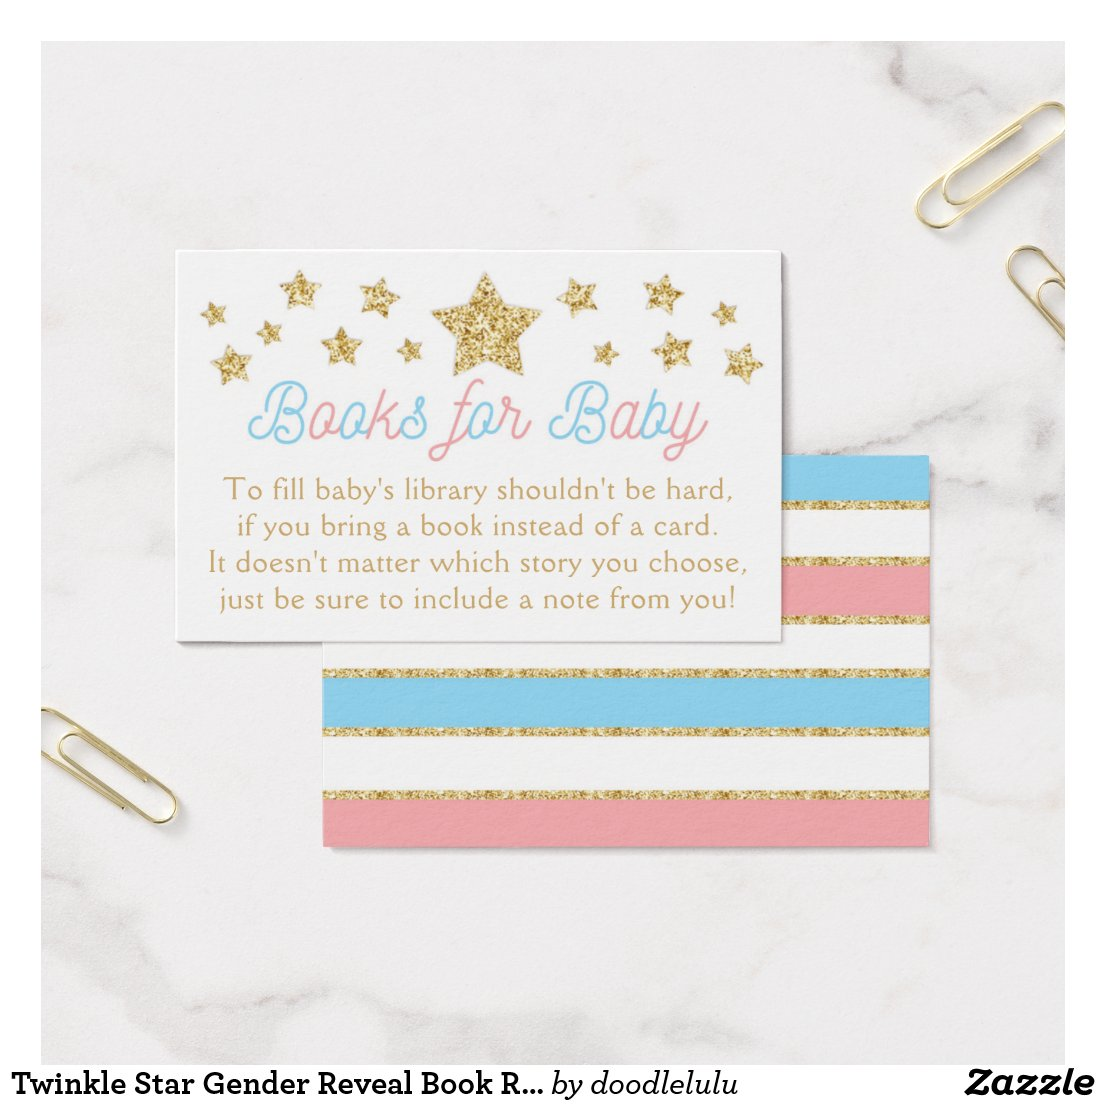 Twinkle Star Gender Reveal Book Request